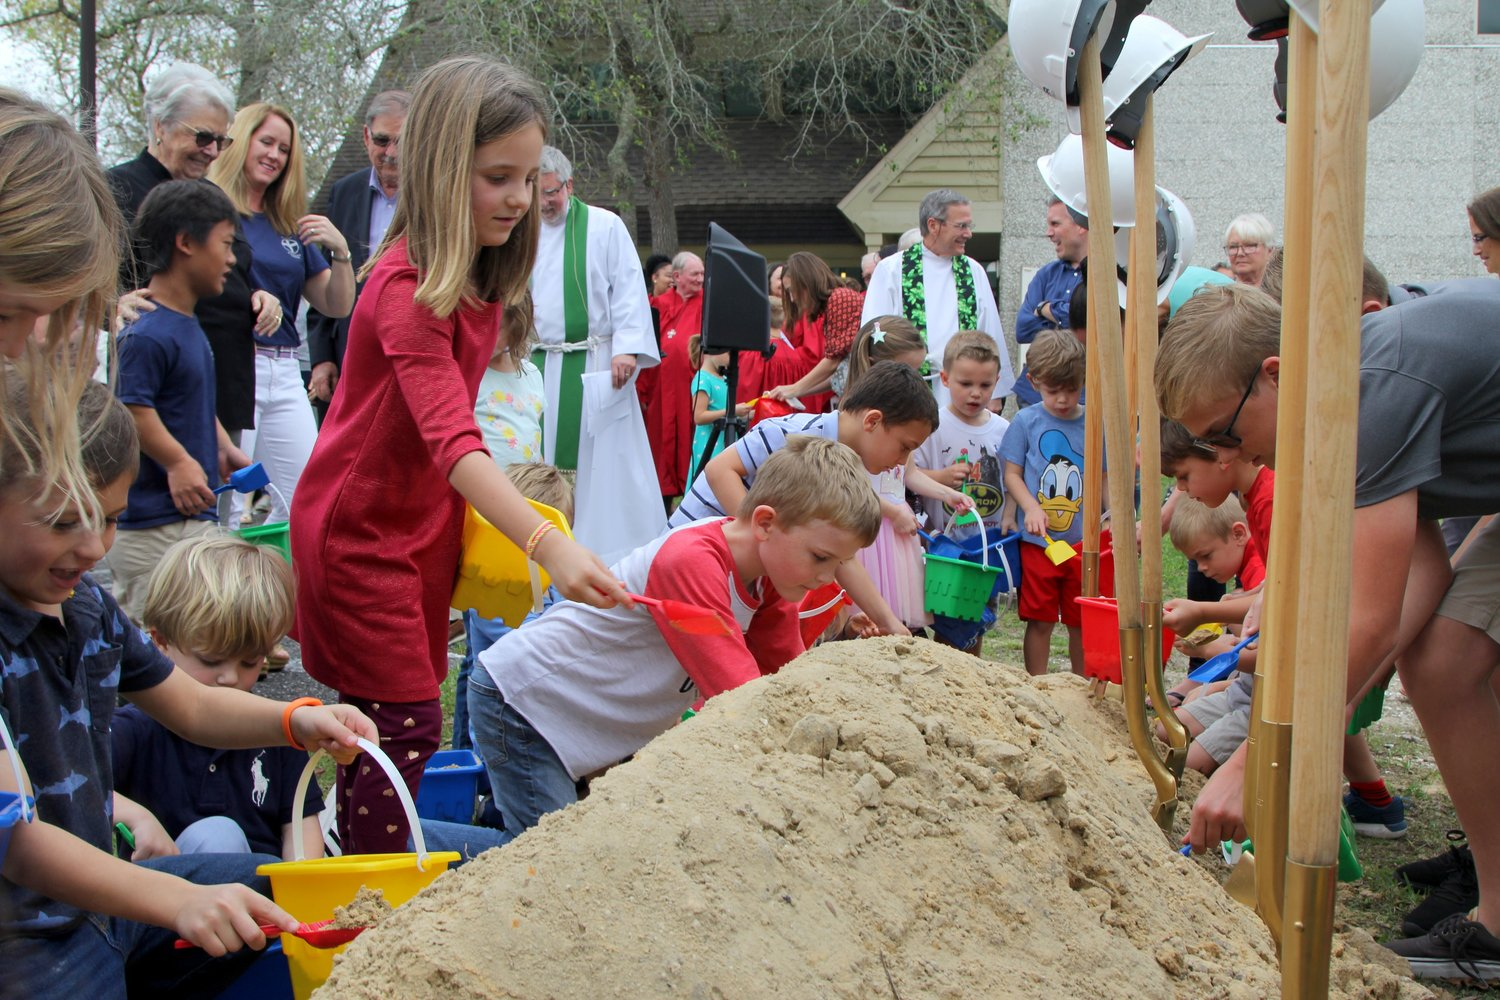 Children participate in the groundbreaking event for the church's new youth building.